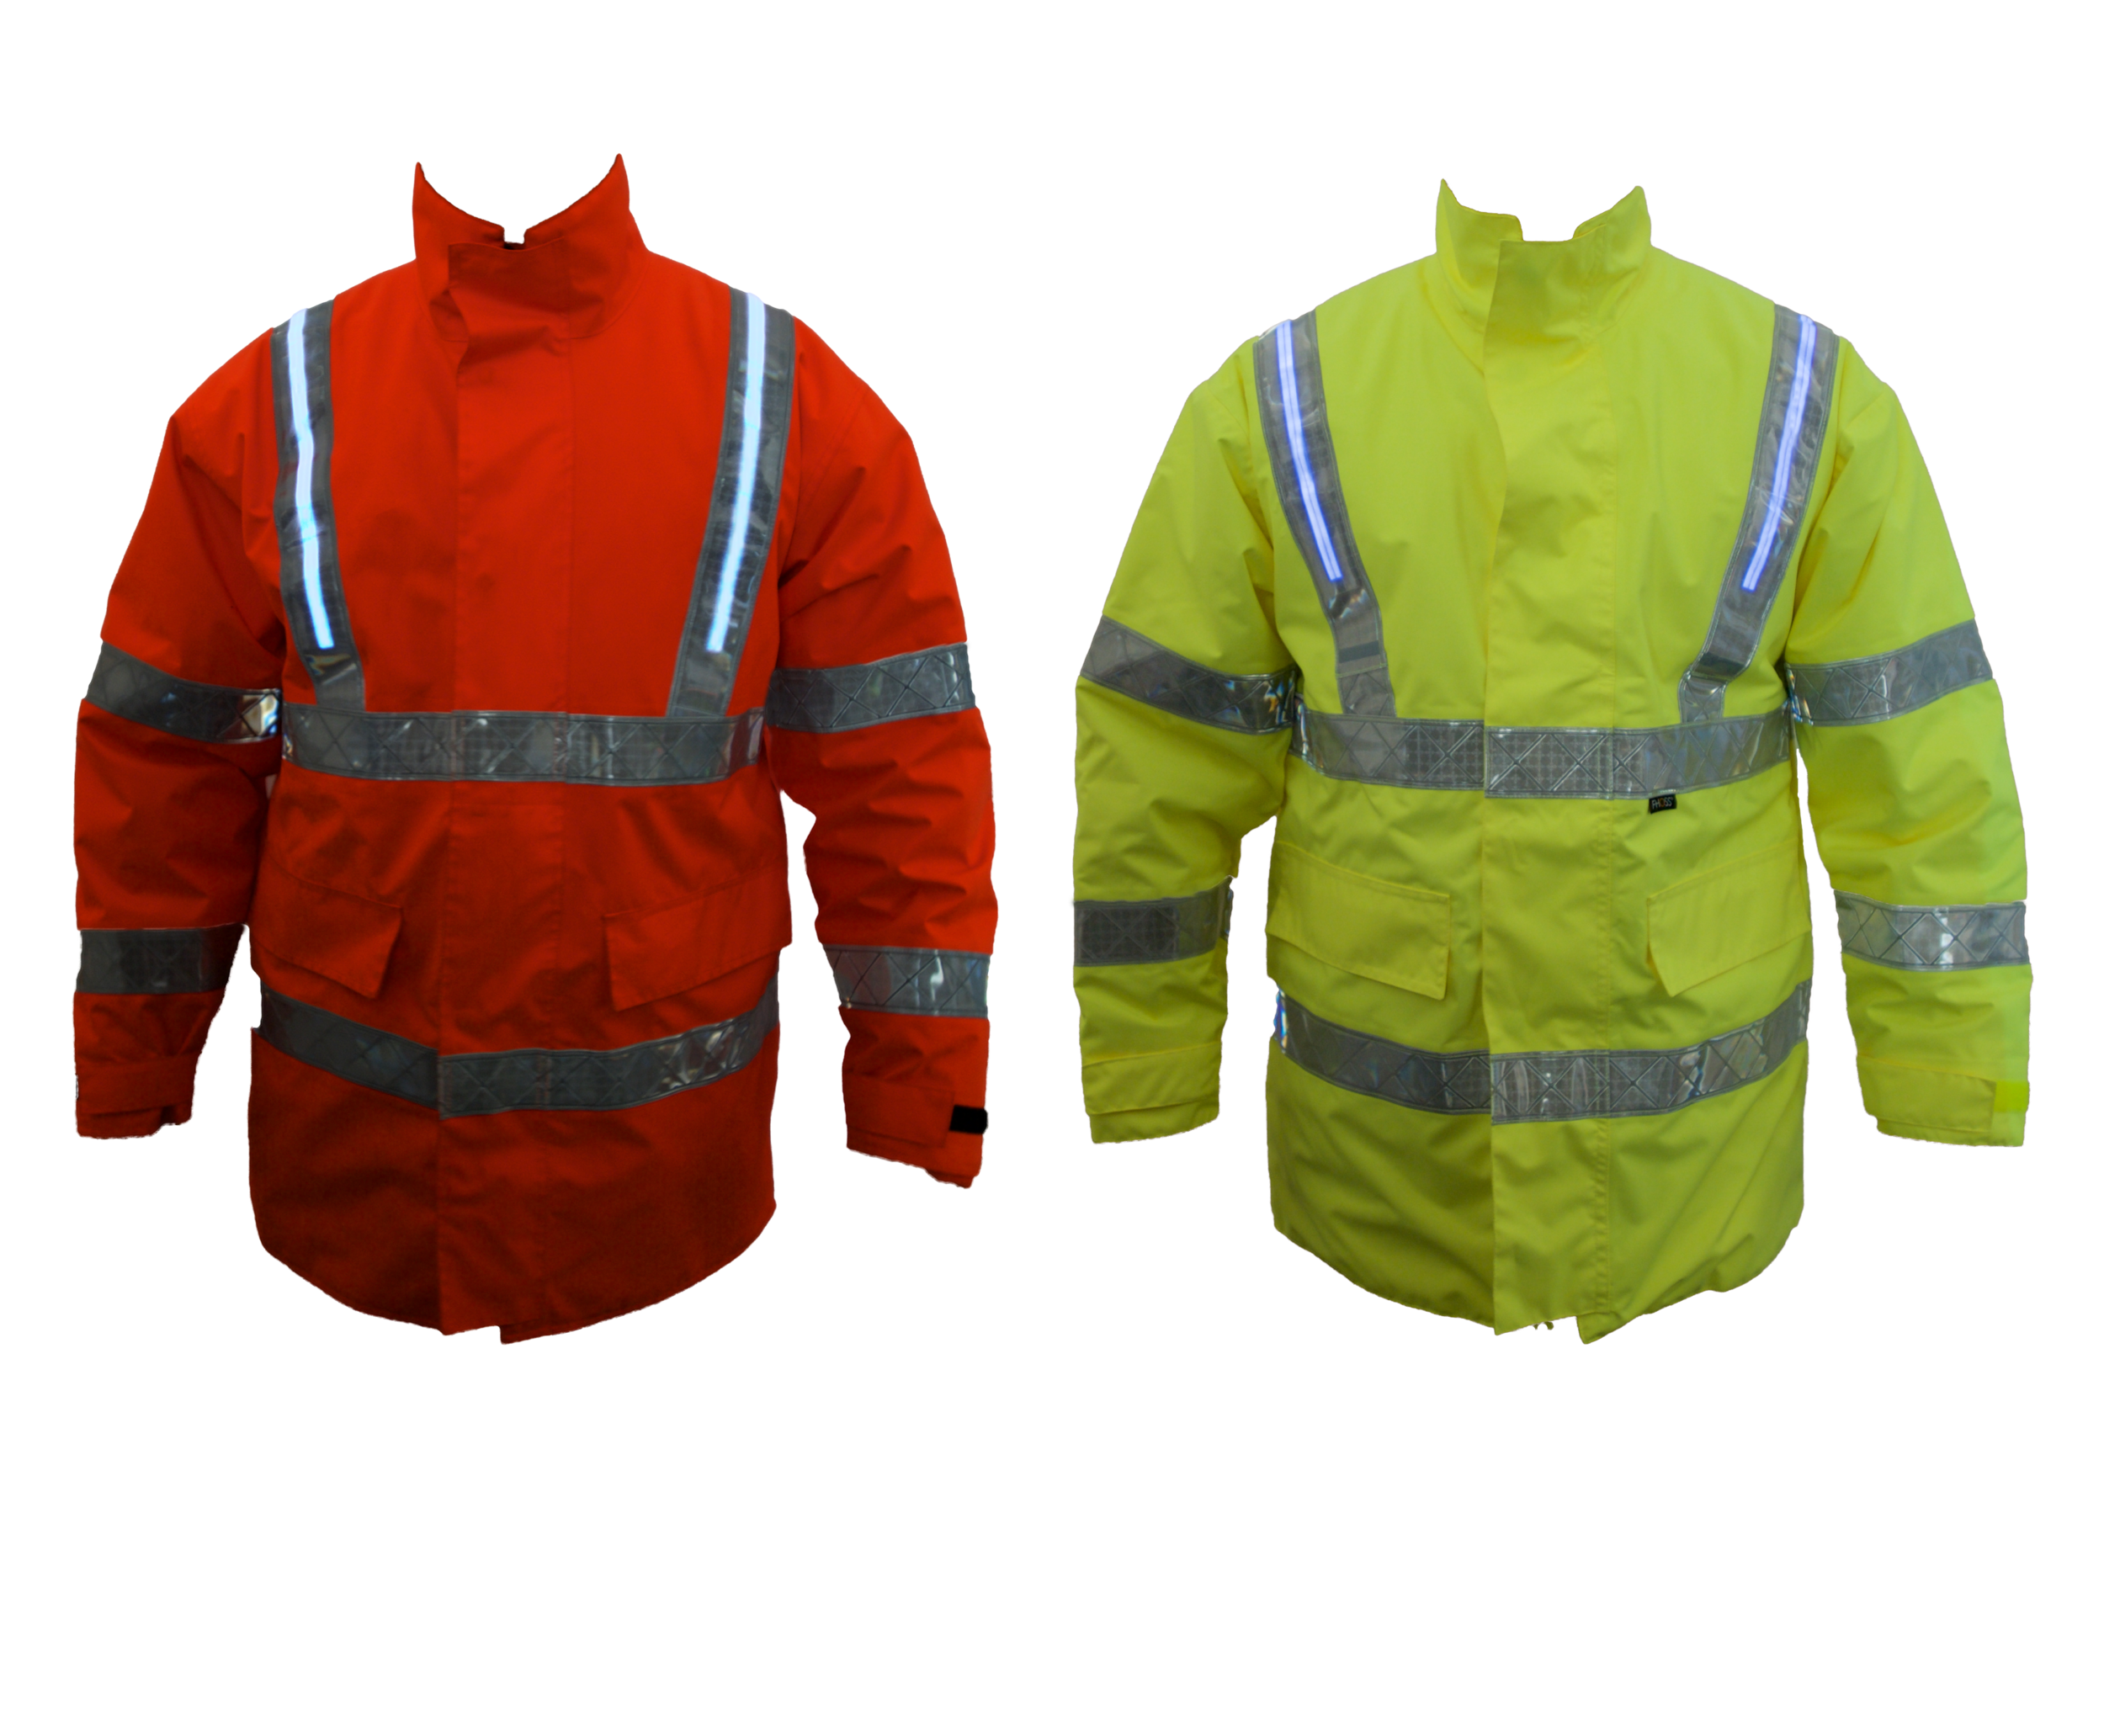 Fhoss Tex Light Foul Weather Jacket   Dual layer design • Sealed Fhoss illuminated Strip • Water proof • High quality fabric • Solid & durable   Test Criteria /  EN ISO 20471:2013 • EN 343 (3:3) • ANSI / ISEA 107 • CSA Z96:02/09 • GO/RT3279  • IP 67 connector